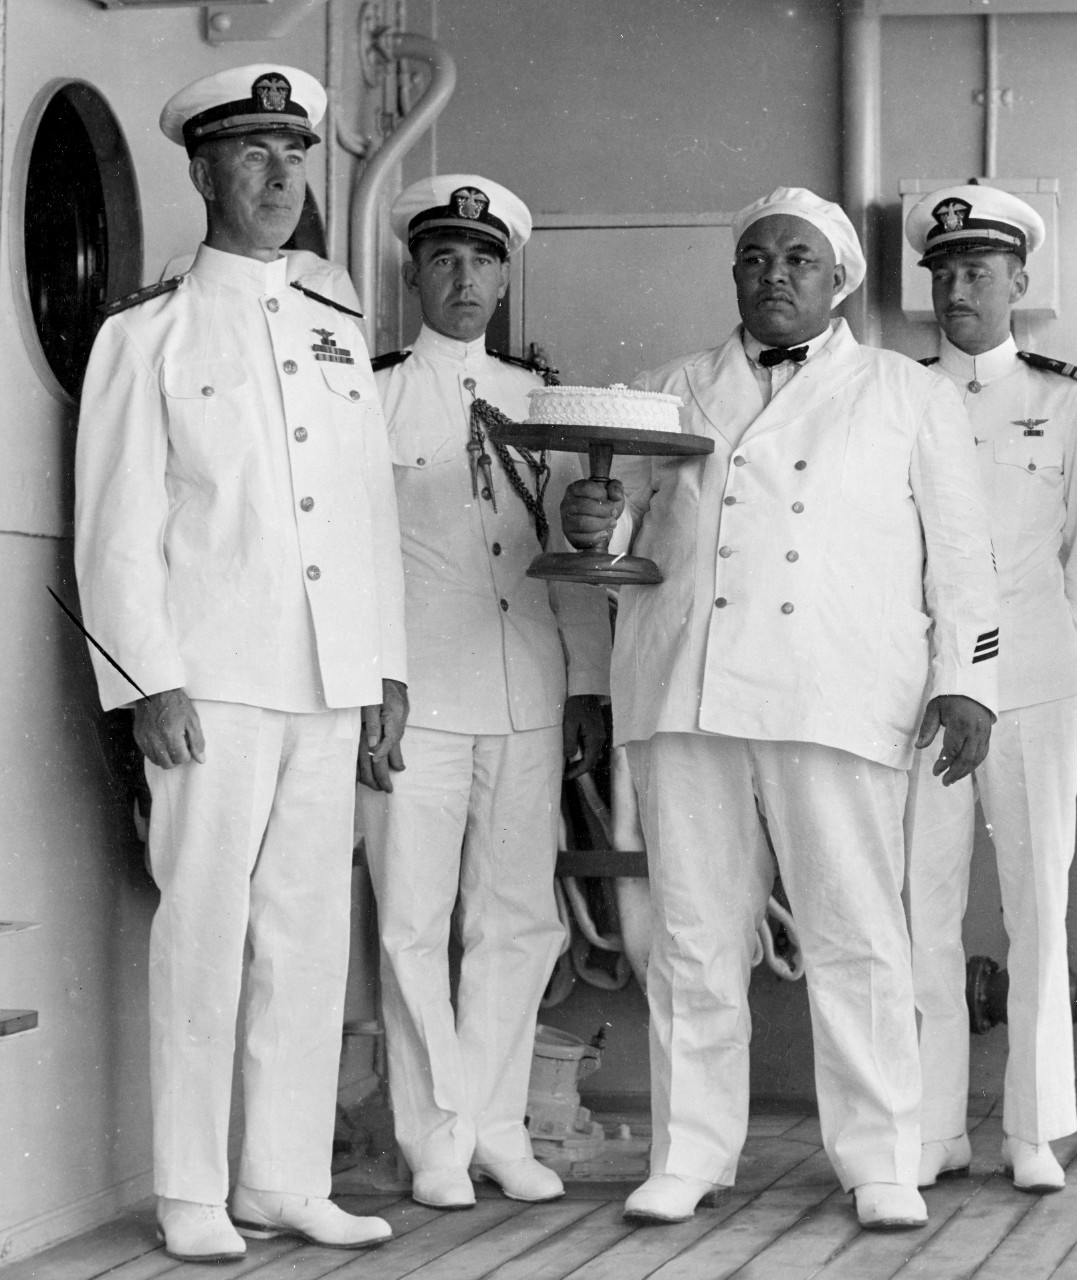 Rear Adm. Halligan and Lt. Ward receive cake, 18 May 1934. (U.S. Navy Photograph 80-G-462748, National Archives and Records Administration, Still Pictures Division, College Park, Md.)